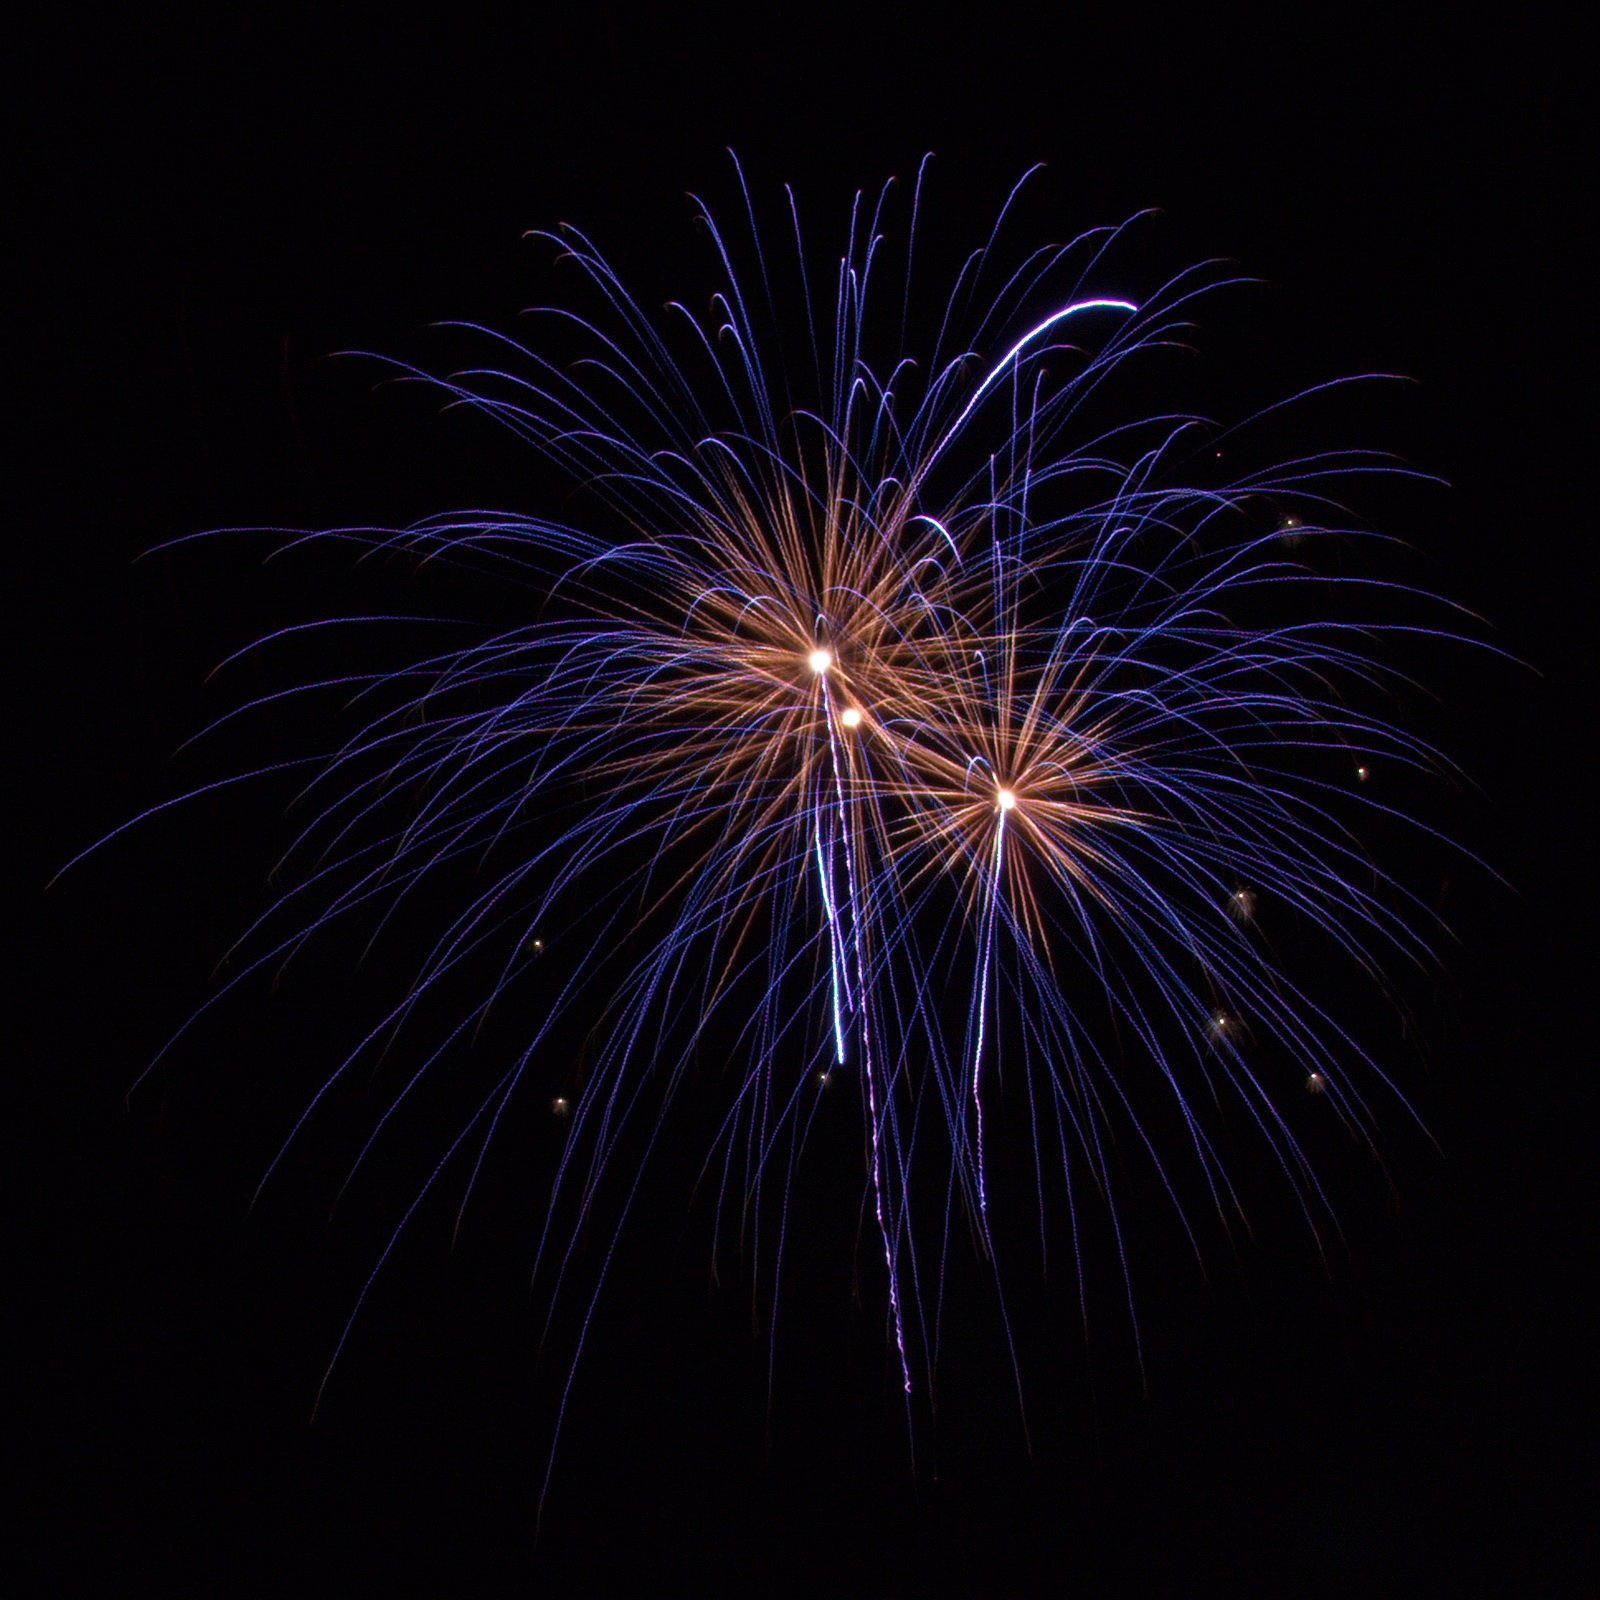 Cape Cod Fireworks: purple with a gold heart